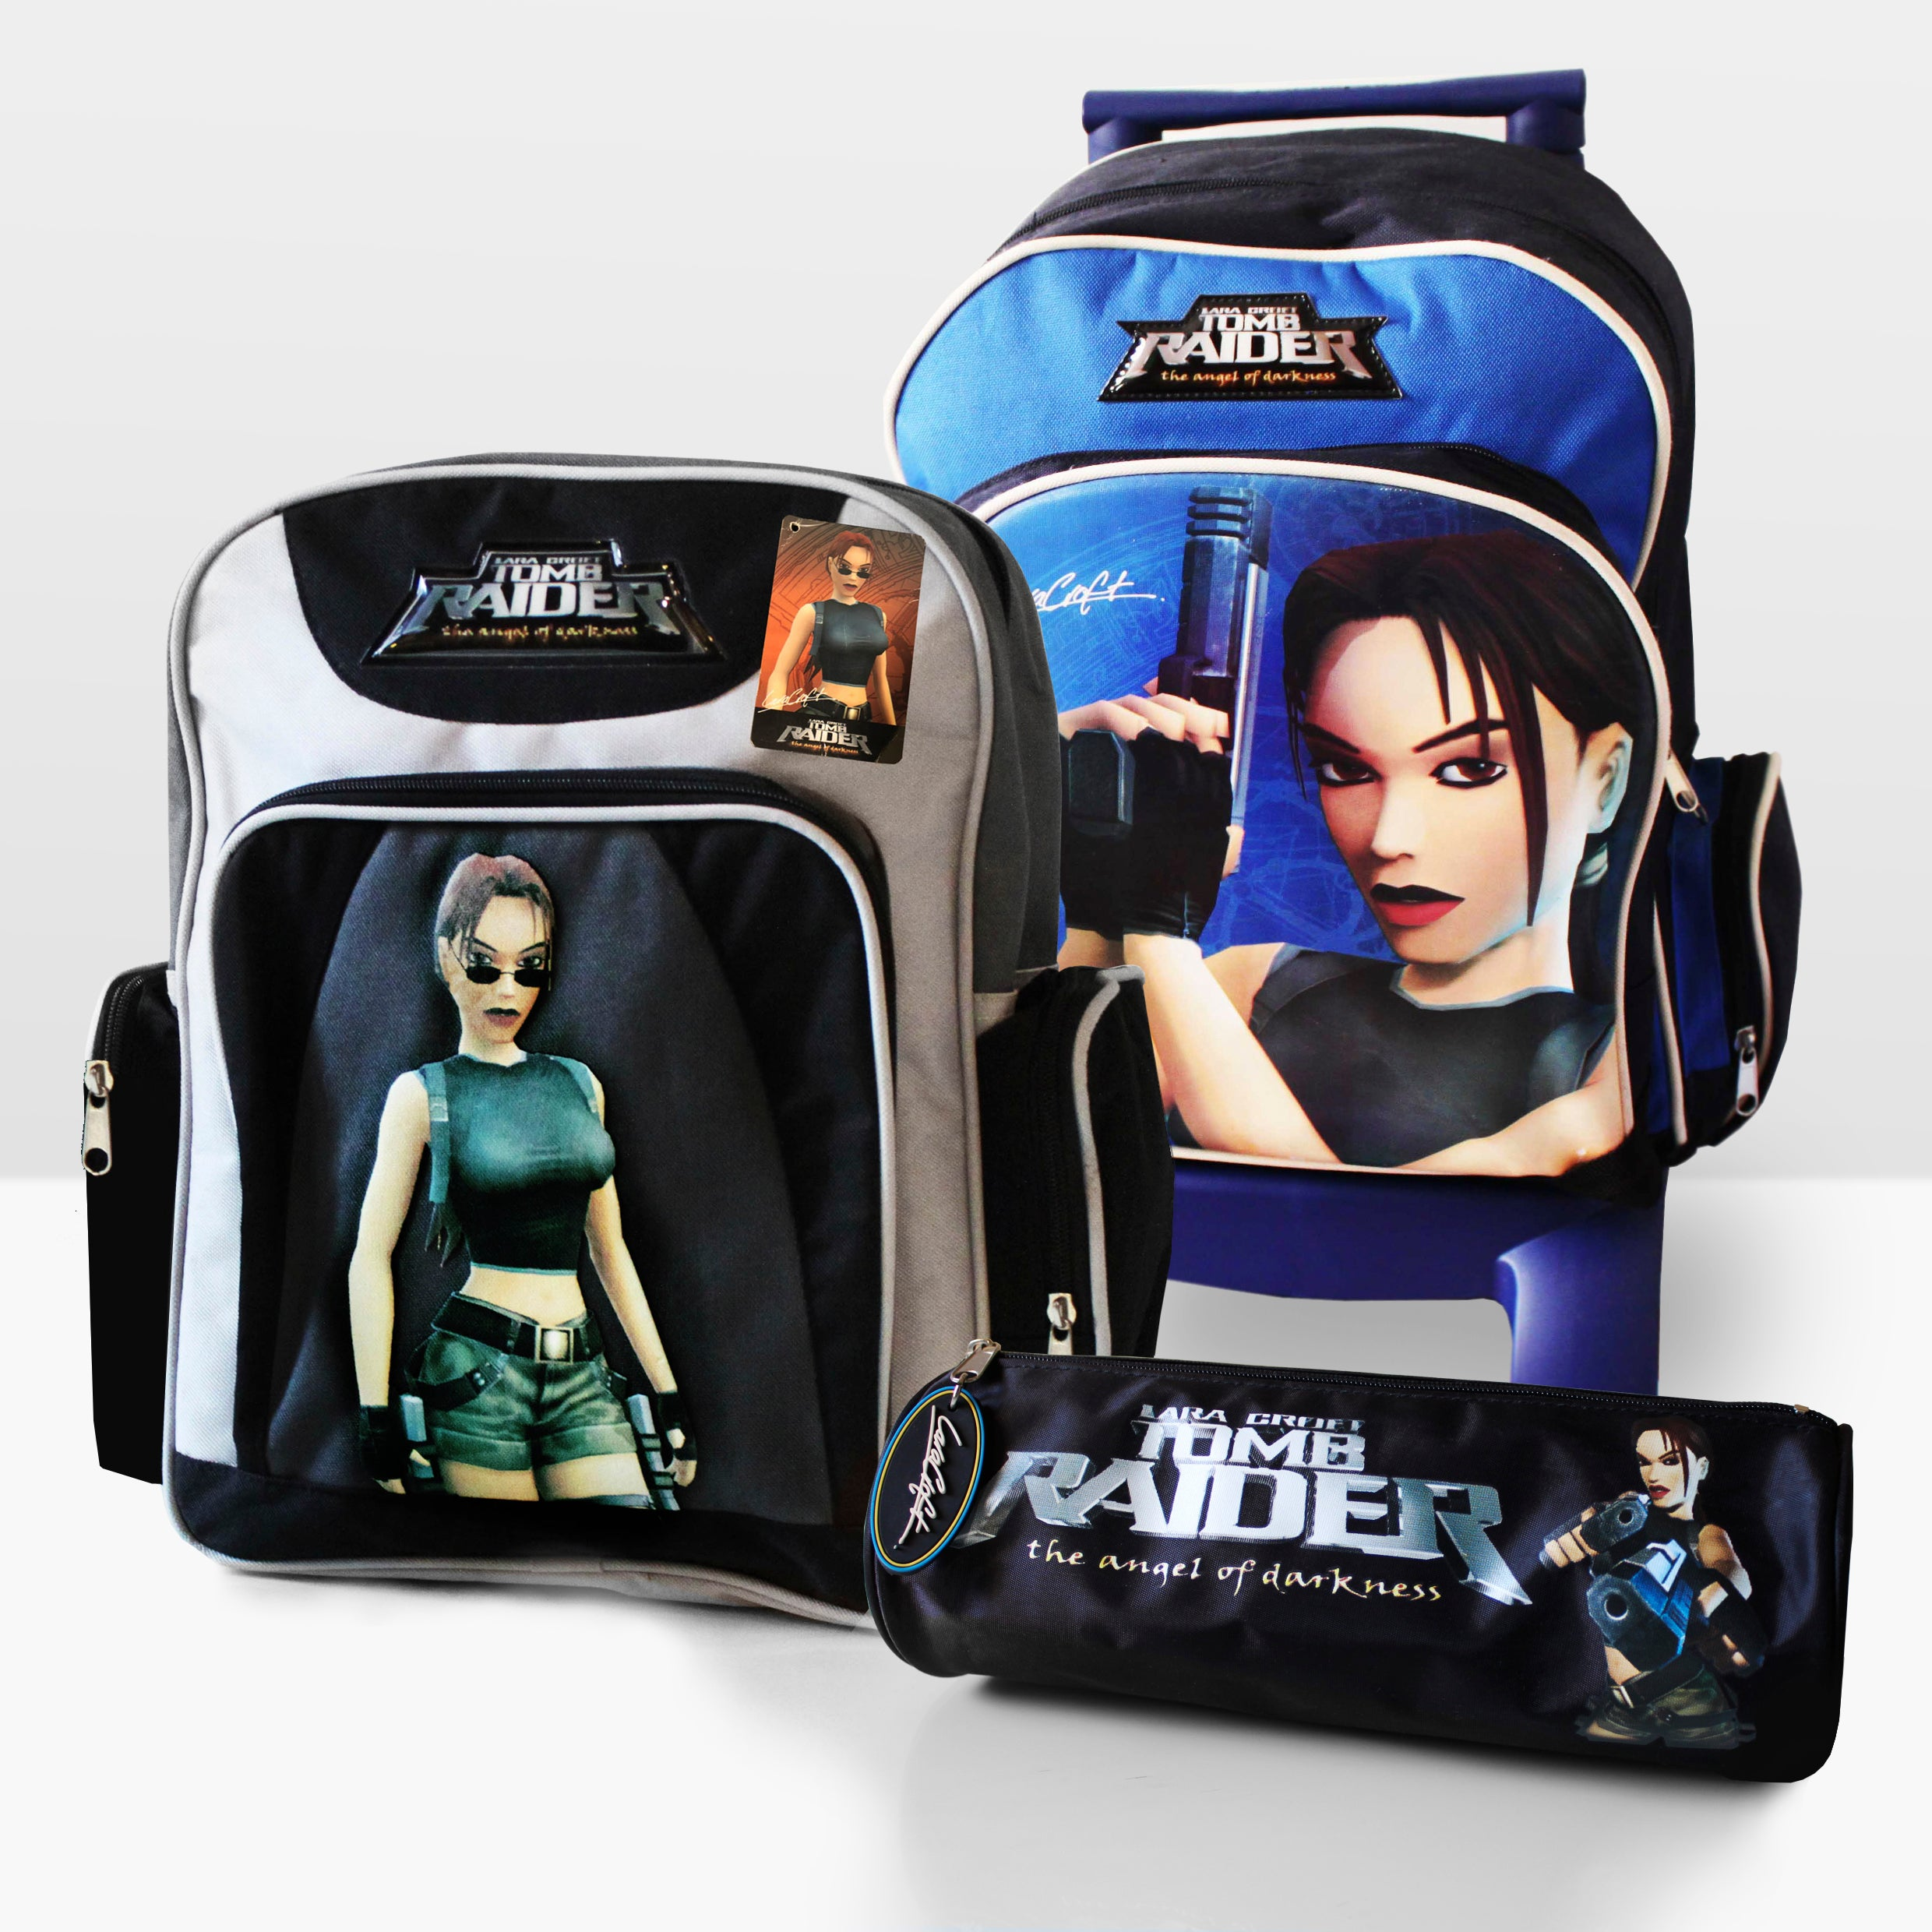 A picture of various Tomb Raider: The Angel of Darkness themed bookbags and bags from 2003